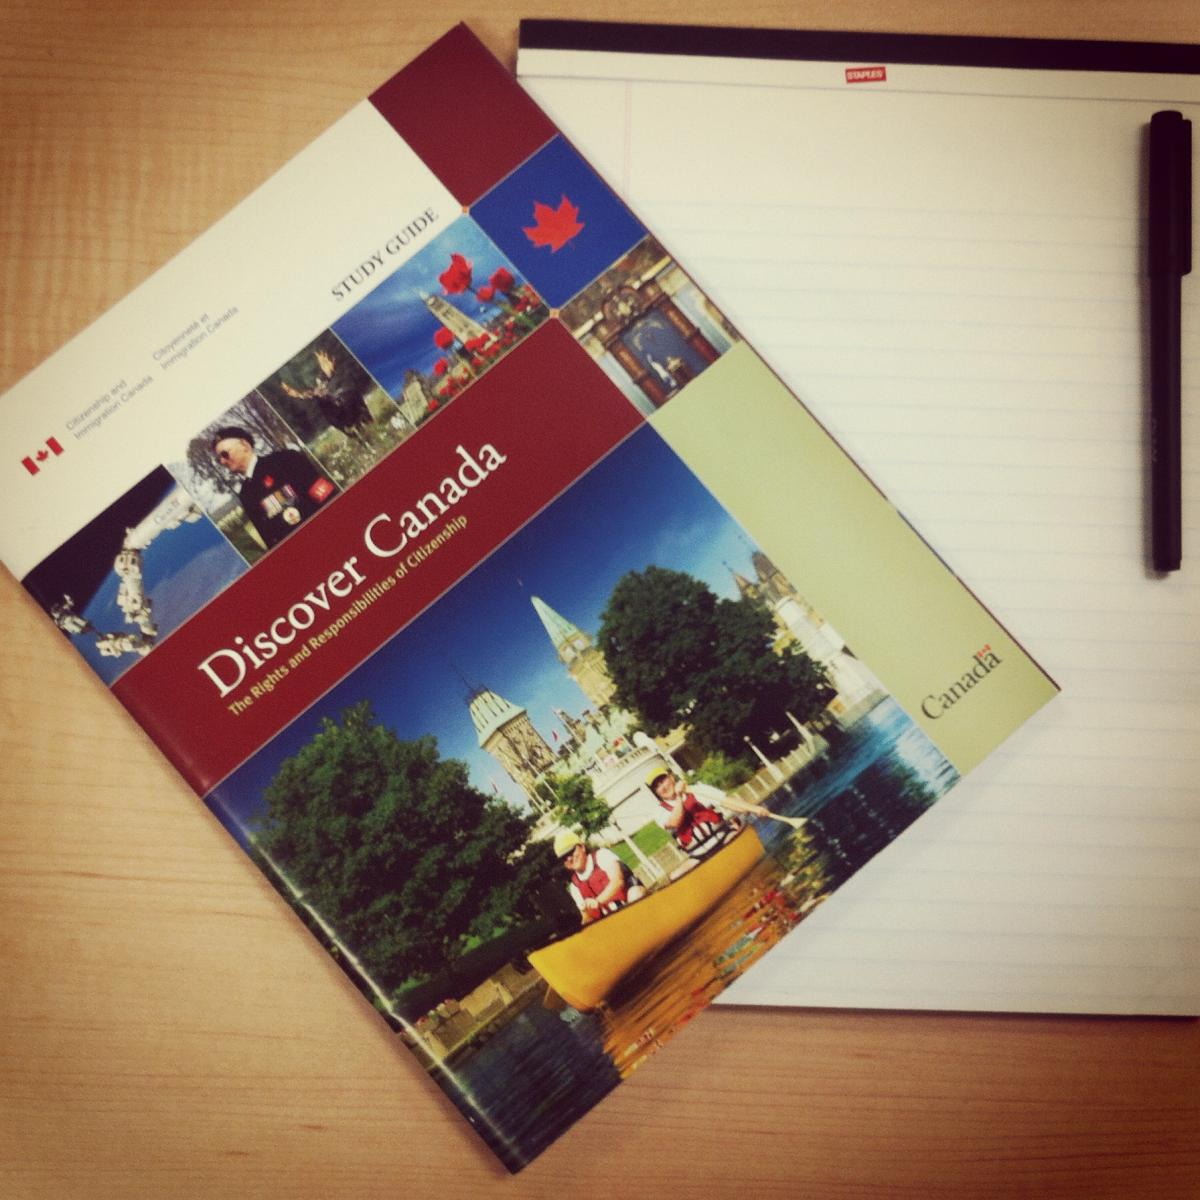 Canadian Citizenship Test study guide by Discover Canada